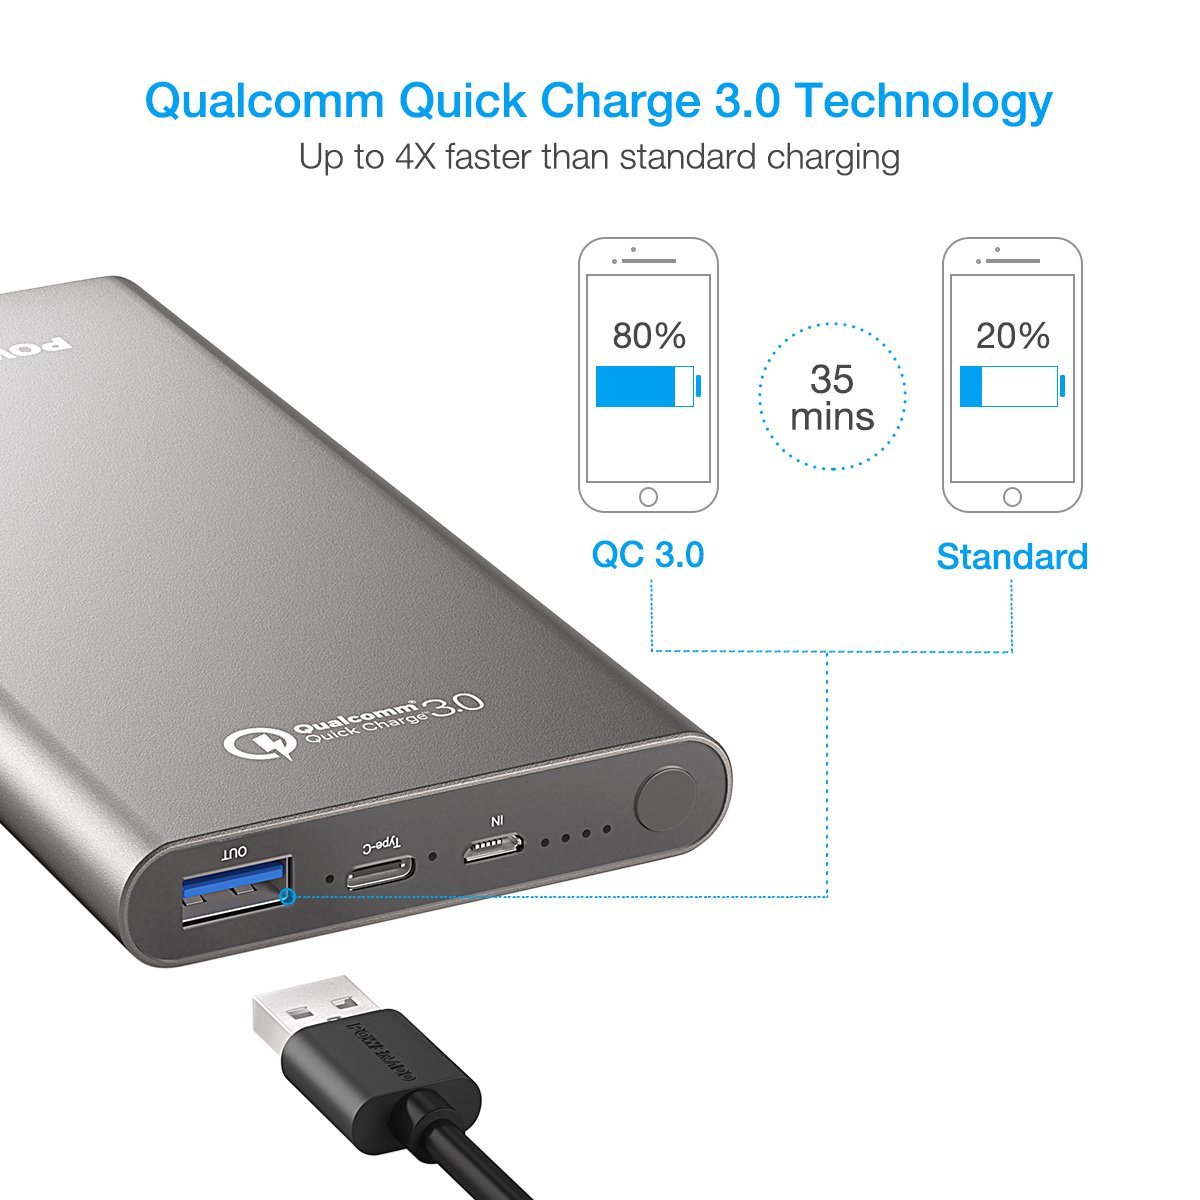 Poweradd Pilot 2GS 10000mAh Portable Charger (Quick Charge 3.0 & USB-C Output 4.8A), Slim Power Bank for iPhone, Samsung, Nintendo Switch and More - Grey (Type-C Adapter Included)